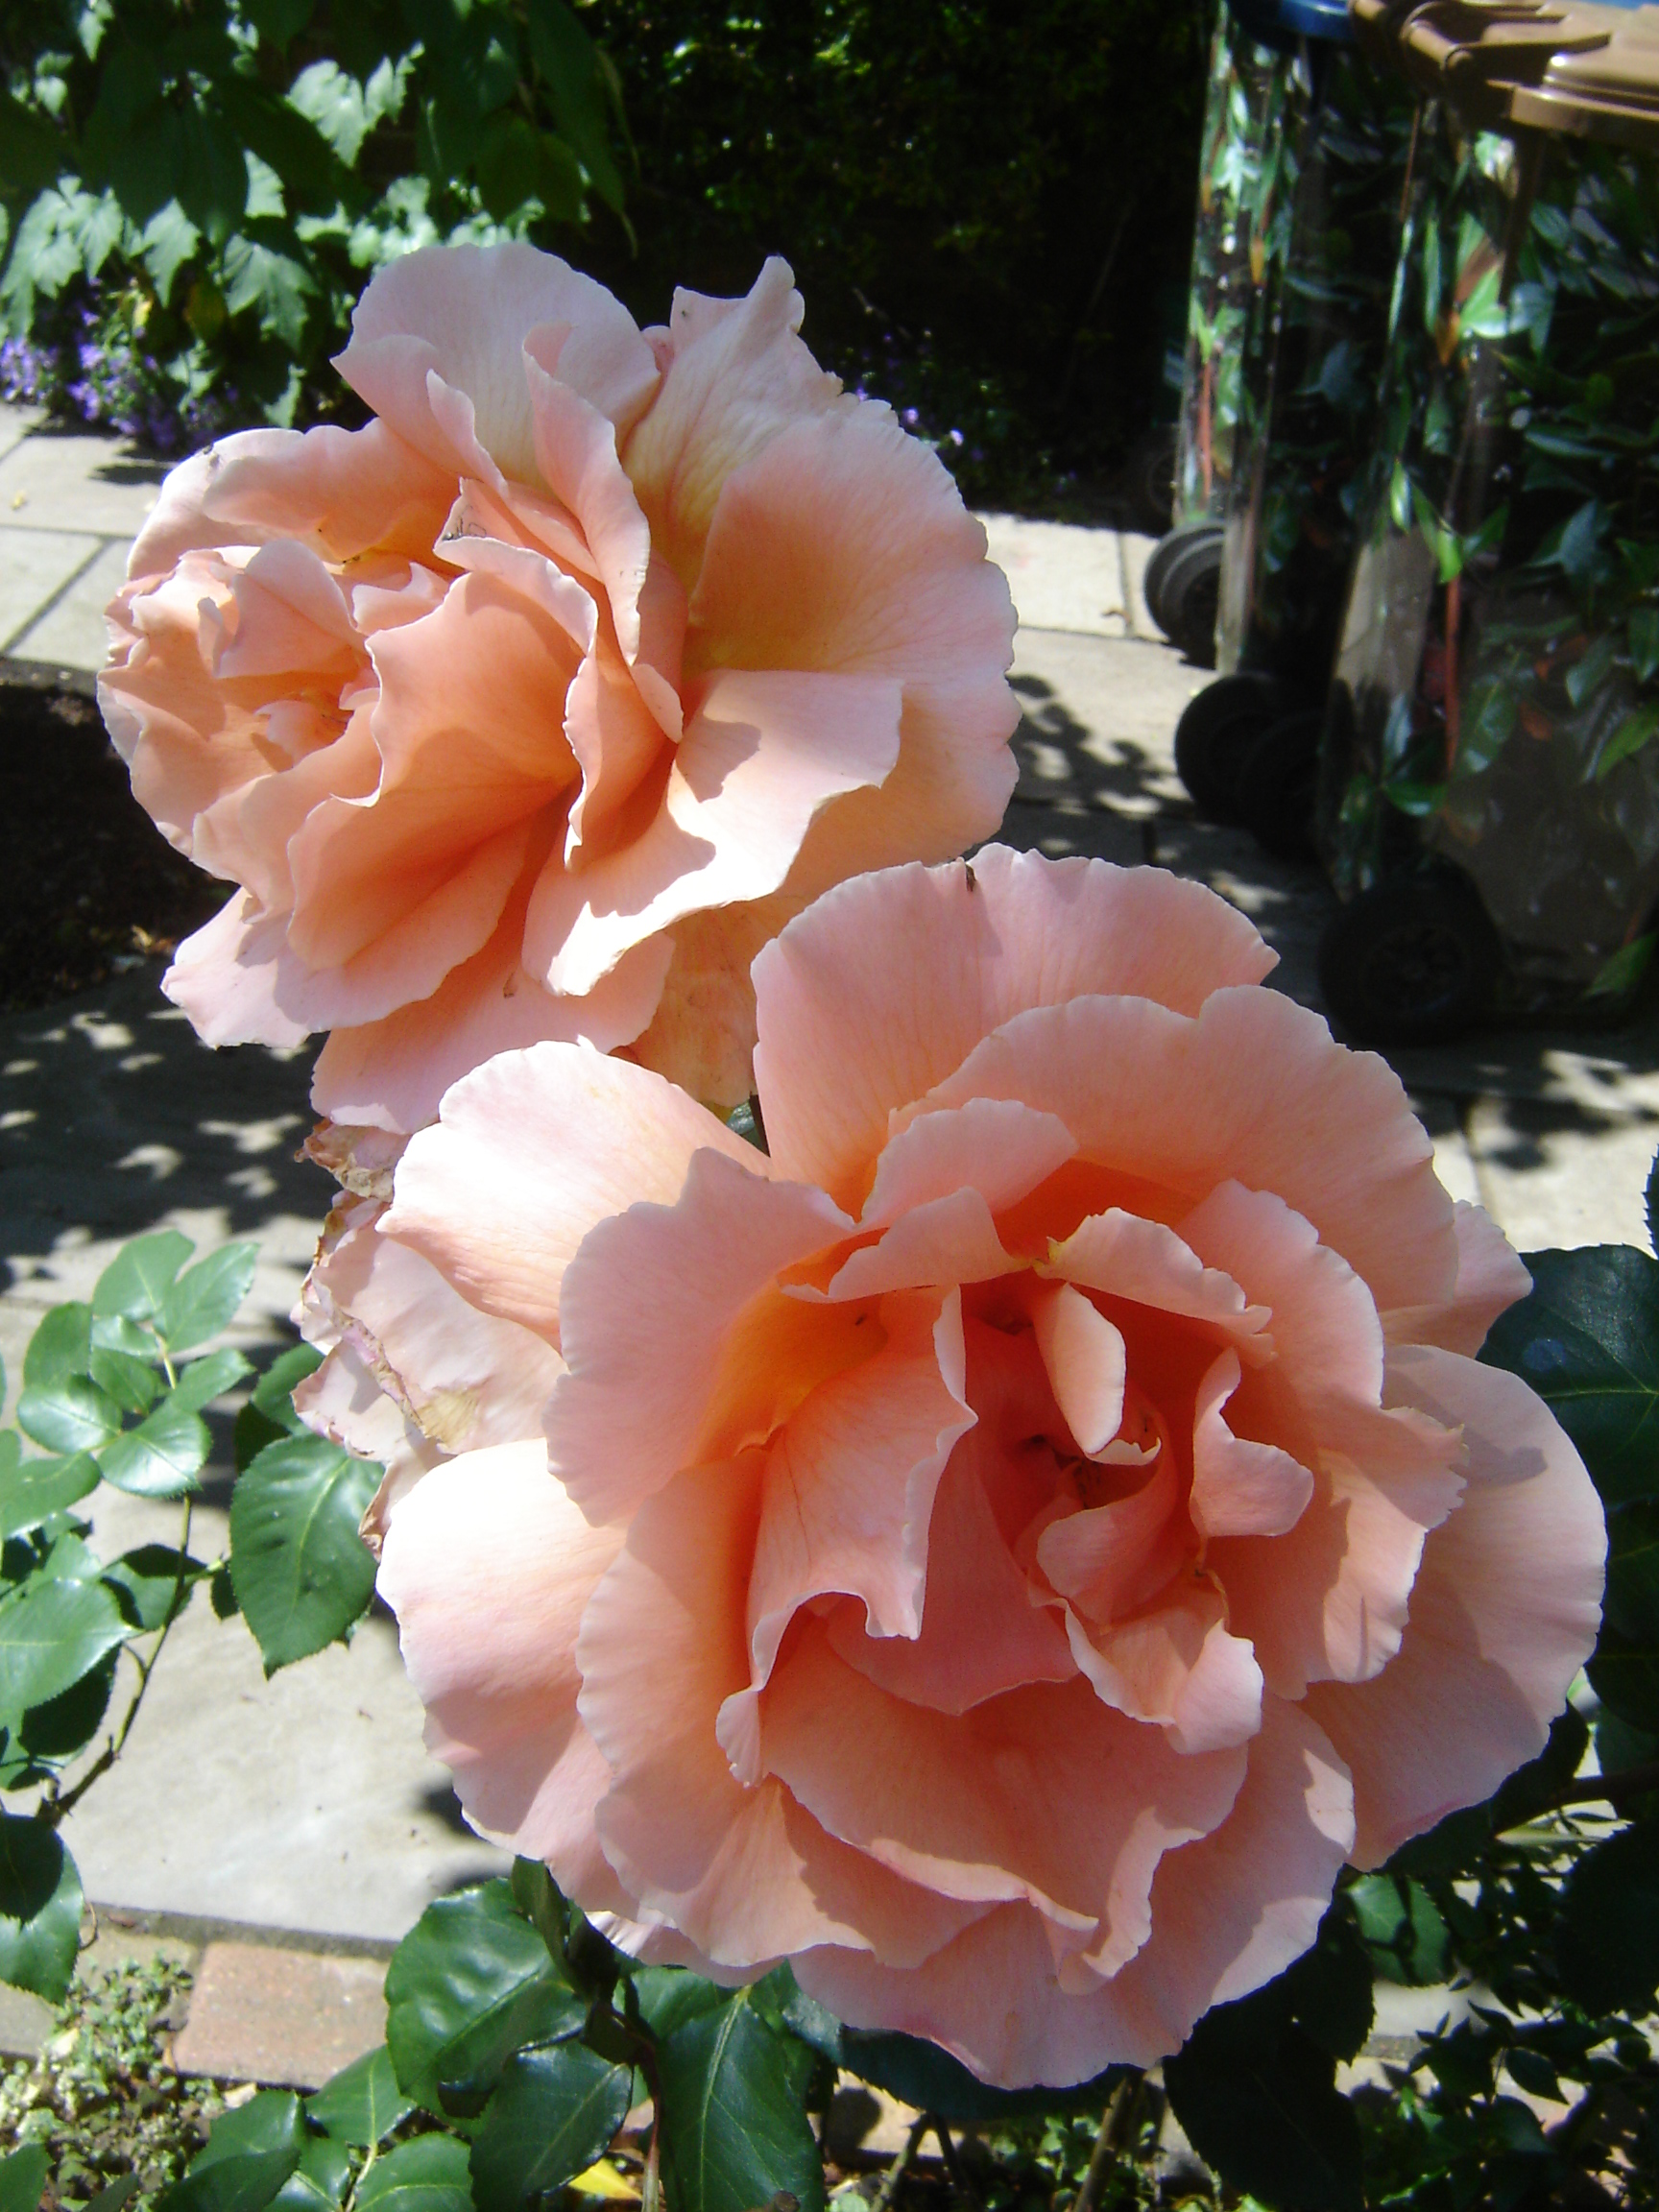 Peach-coloured rose in garden.